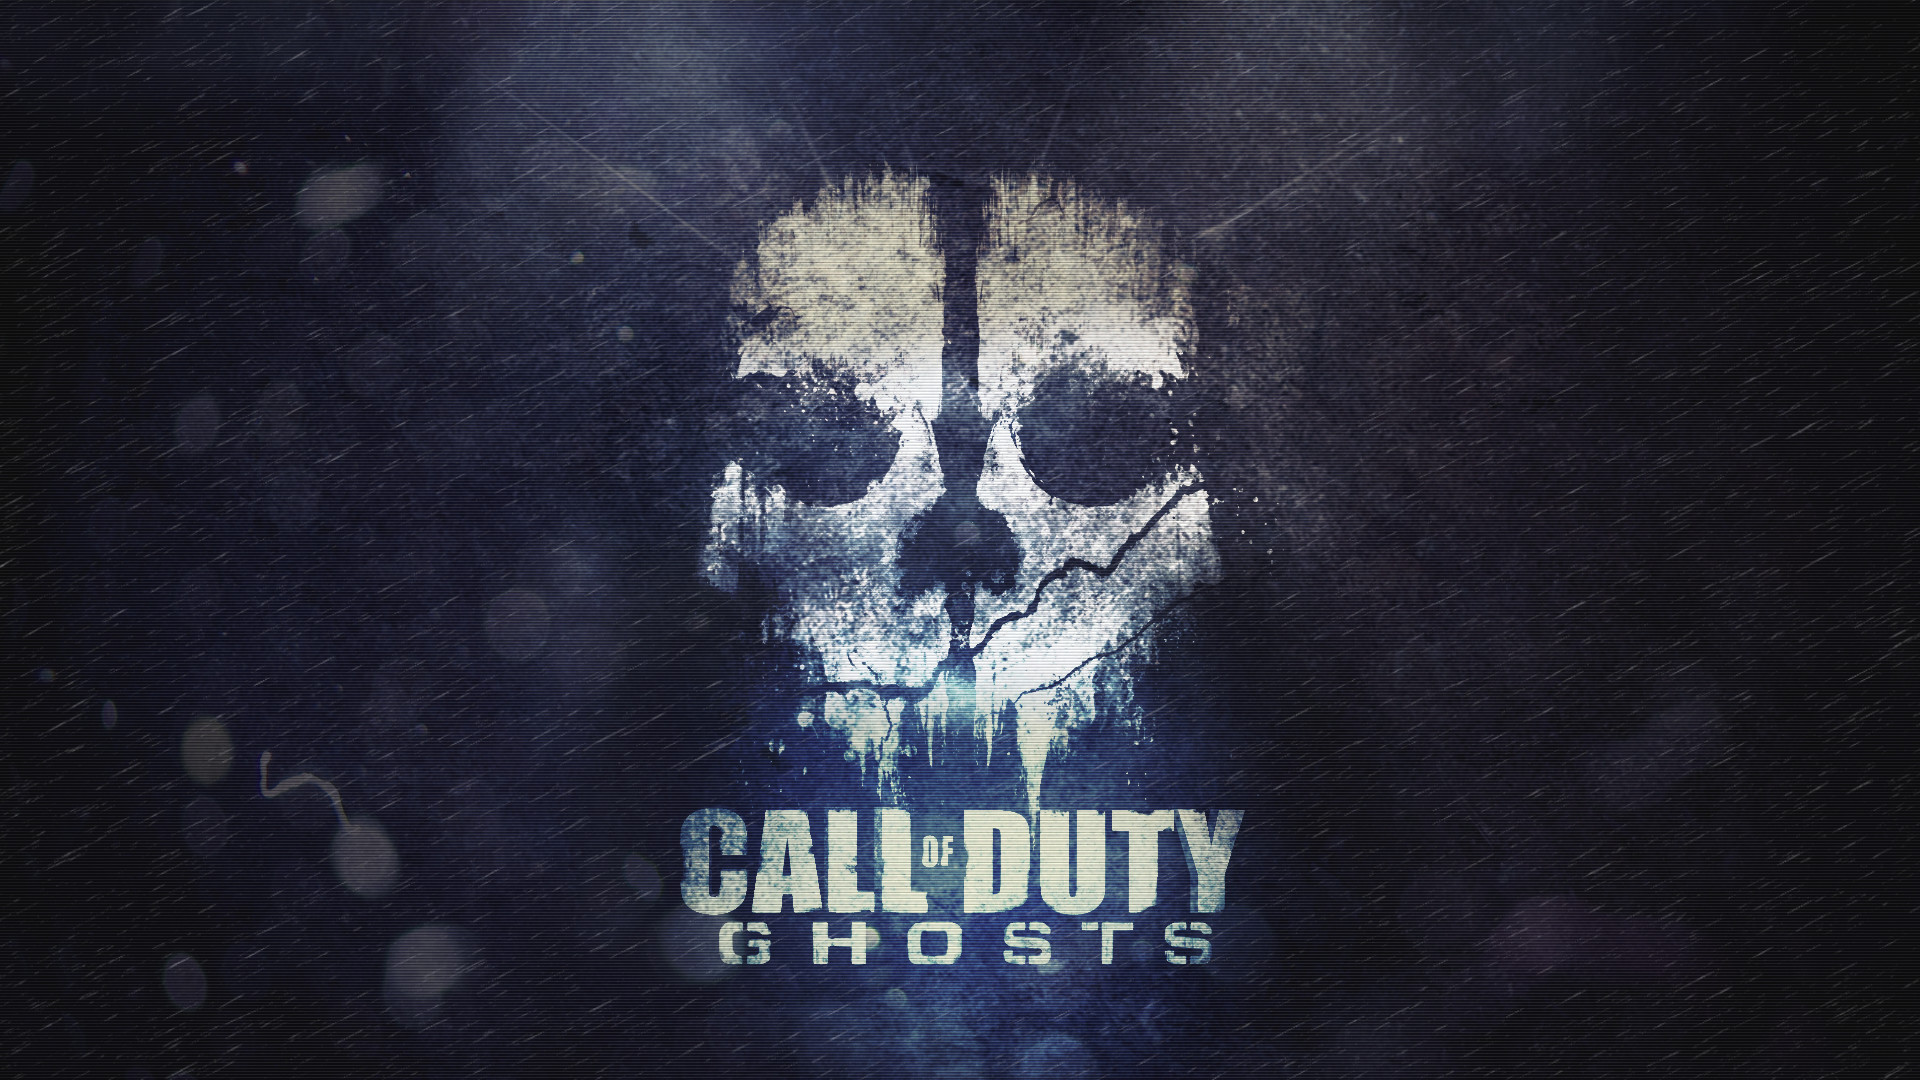 Call of Duty Ghost Wallpaper (81+ images).